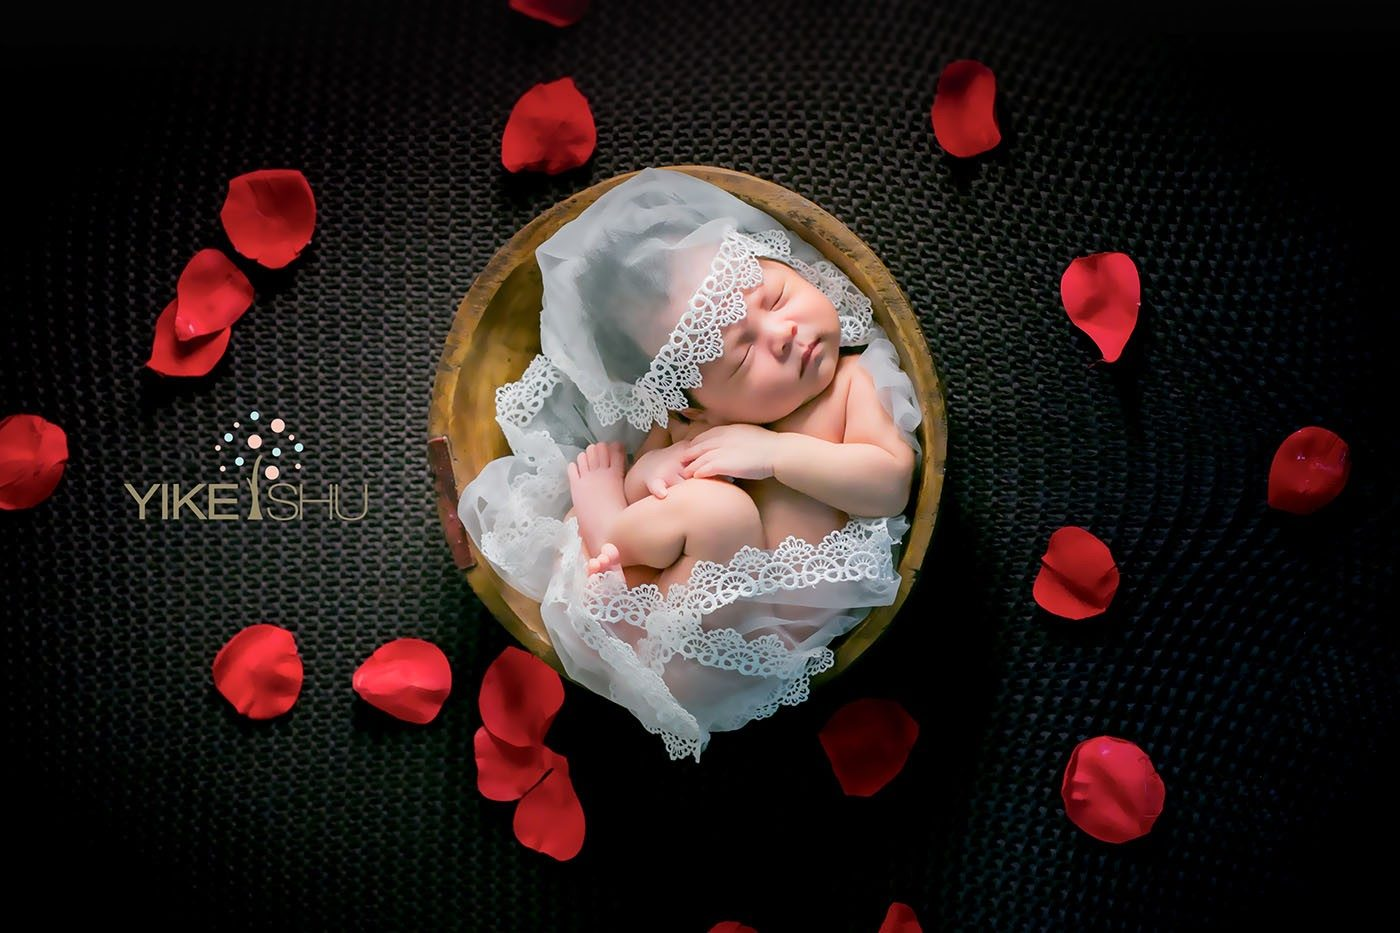 Newborn Babies Online Shopping Newborn Baby Photography Yikeshu Bridal And Photography Studio